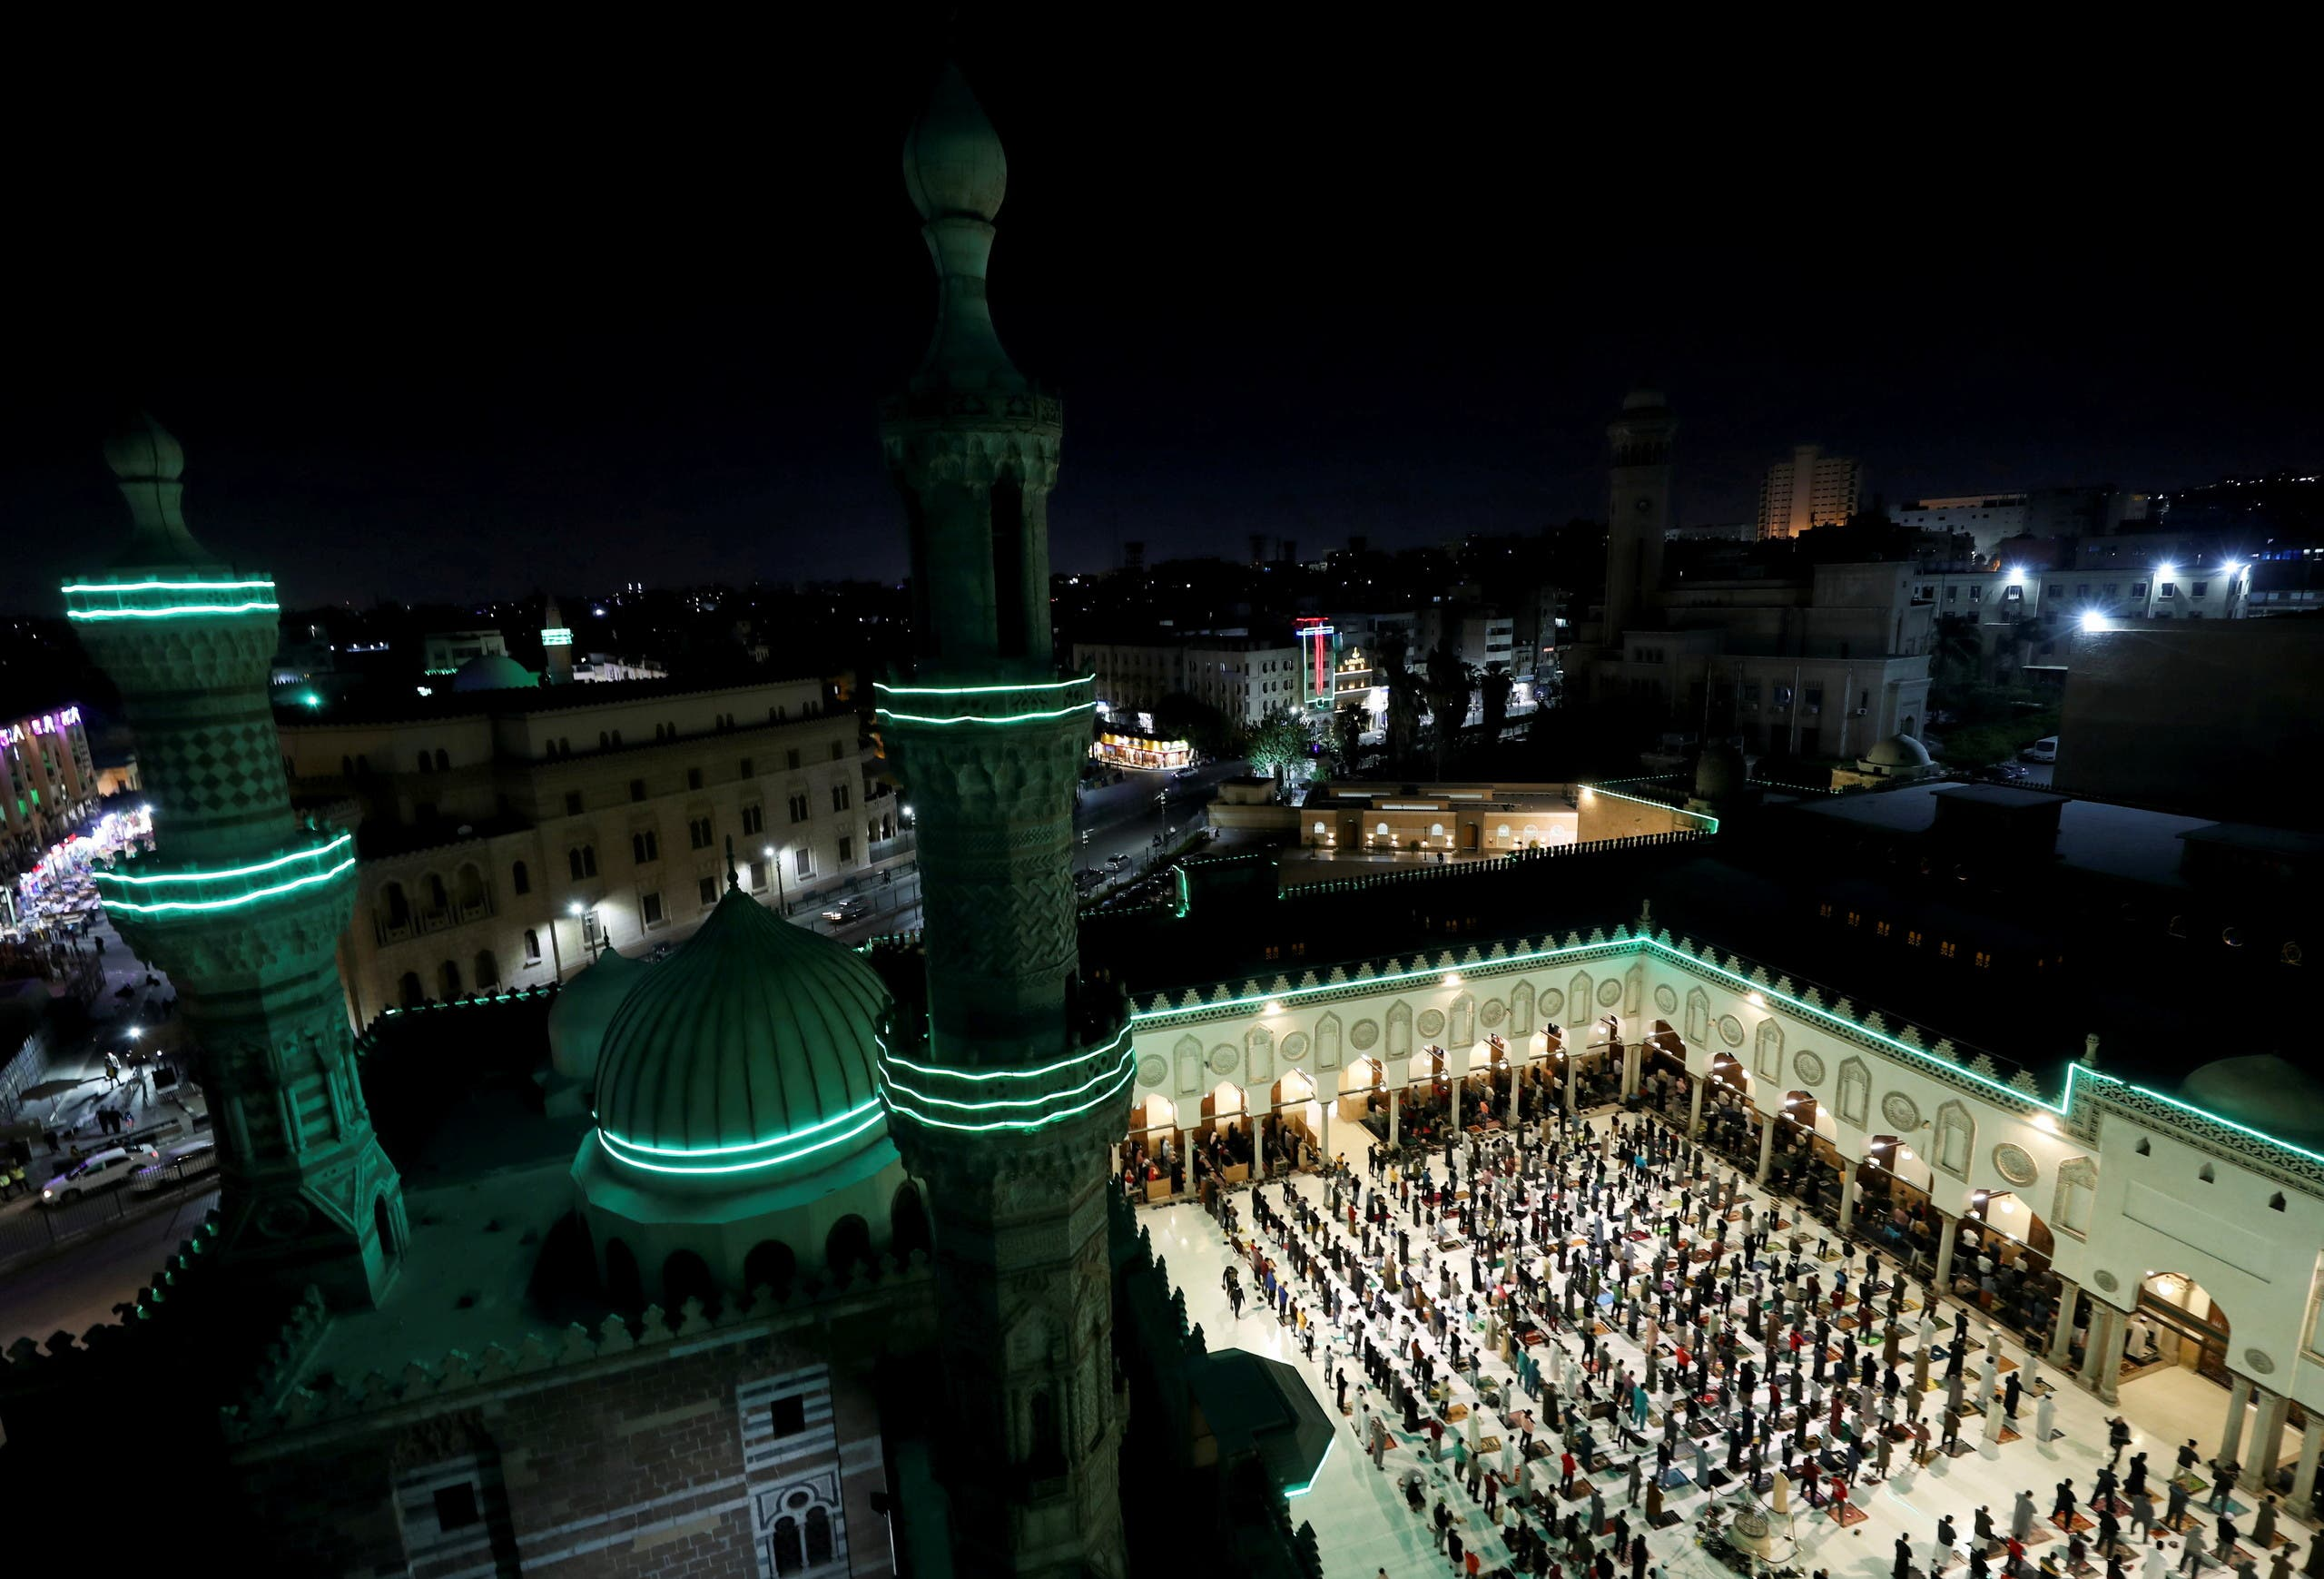 Muslims perform evening Tarawih prayers inside Al-Azhar Mosque on the holy fasting month of Ramadan, amid the coronavirus disease (COVID-19) pandemic in the old Islamic area of Cairo, Egypt, April 13, 2021. (Reuters)